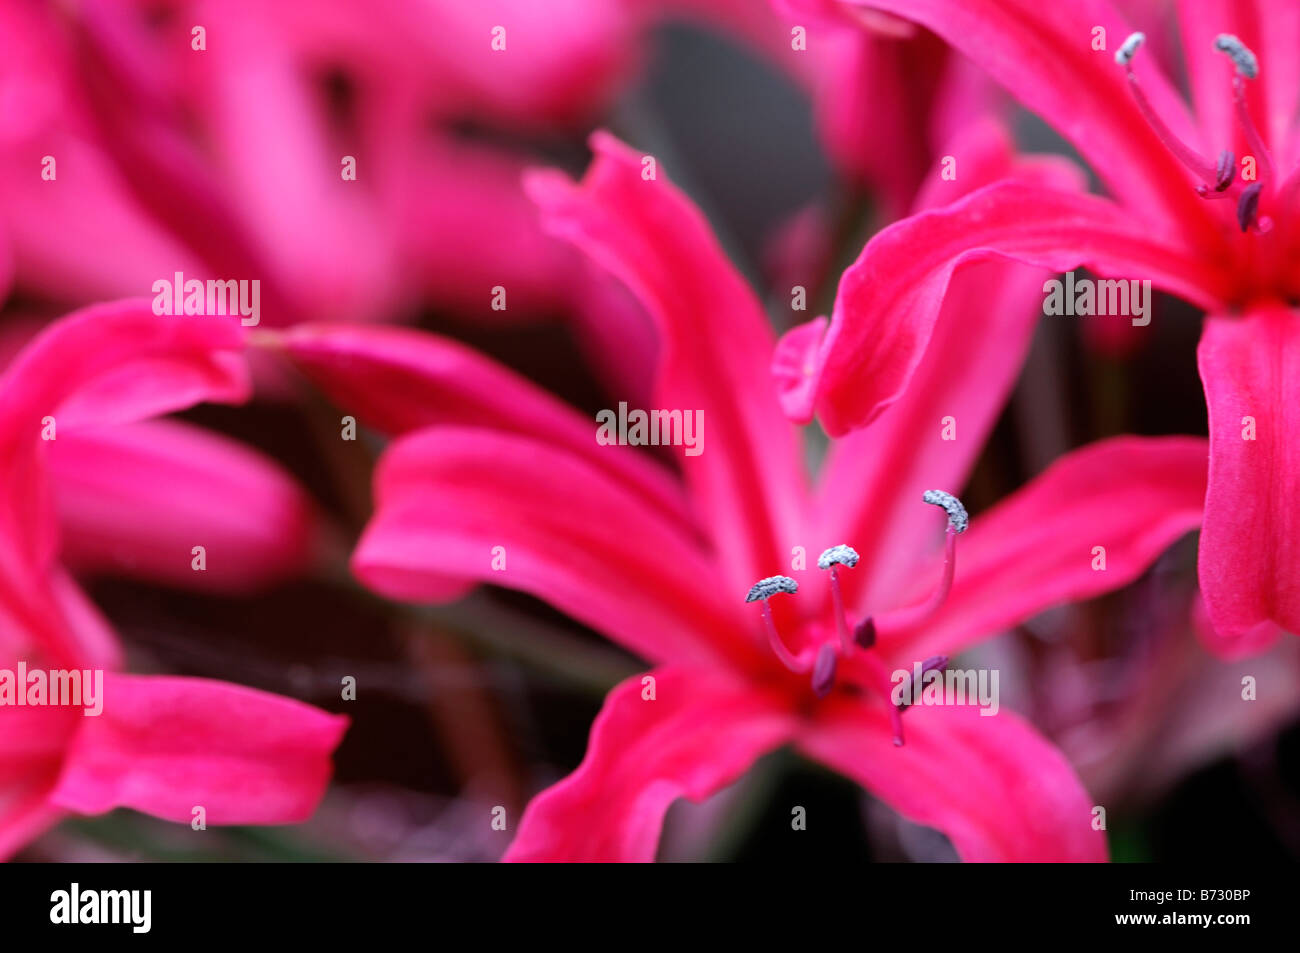 Nerine 'clare pelly' pink closeup close-up detail soft delicate flower bloom blossom wavy crinkle crinkled - Stock Image